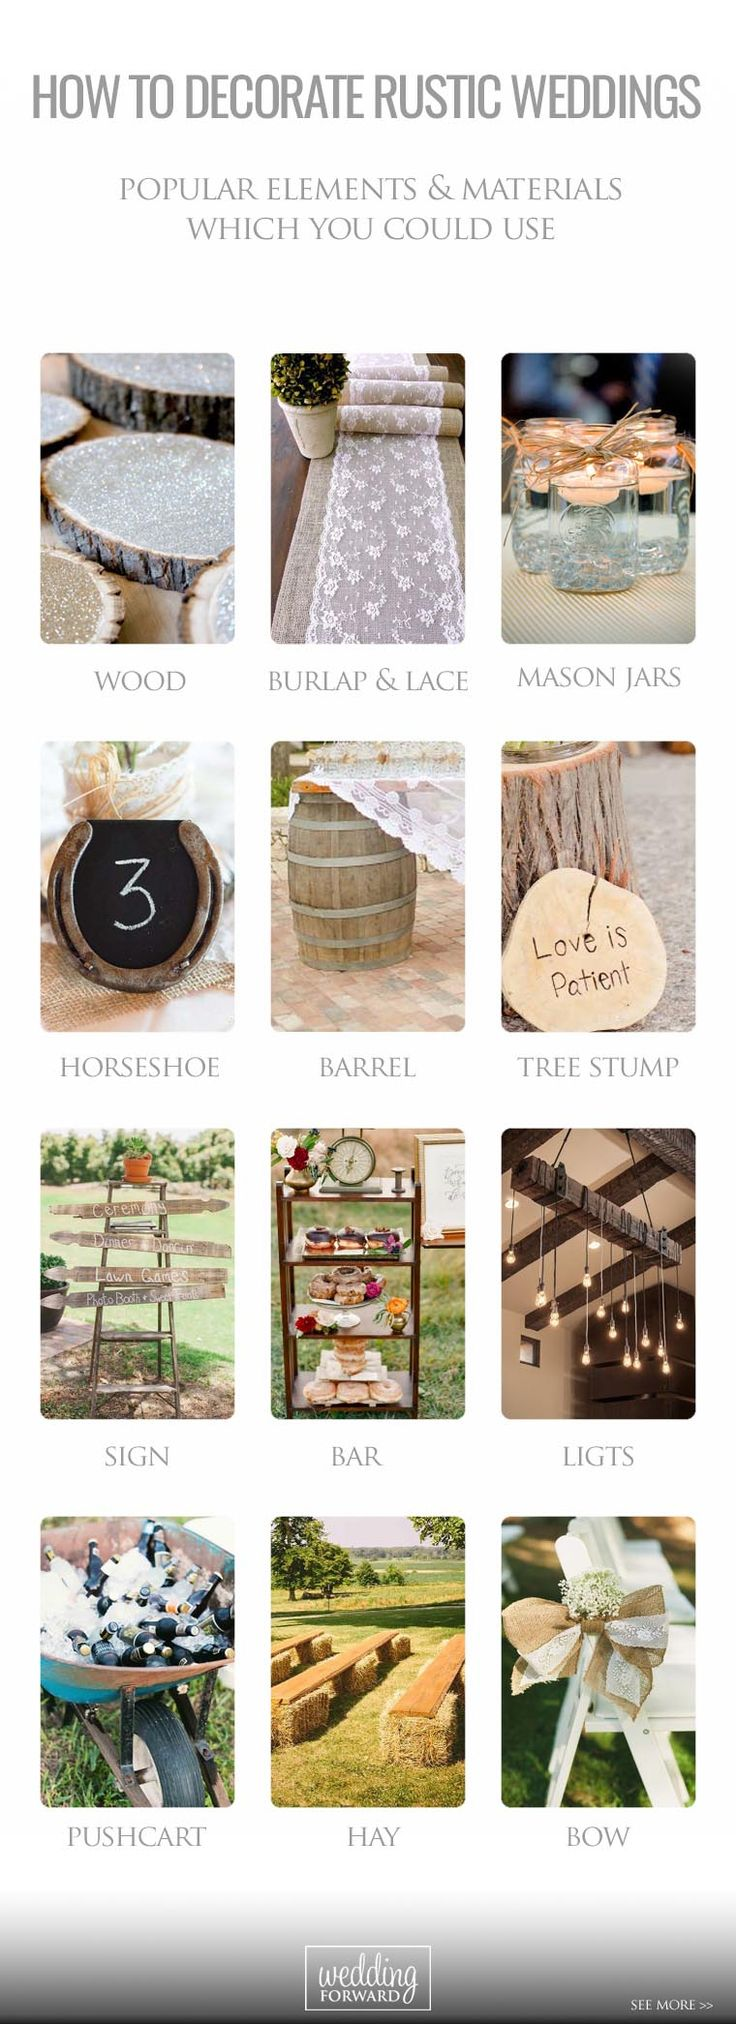 27 Perfect Rustic Wedding Ideas  ❤ Do a research with us and see our gallery of rustic wedding ideas!  See more: http://www.weddingforward.com/rustic-wedding-ideas/ #wedding #decorations